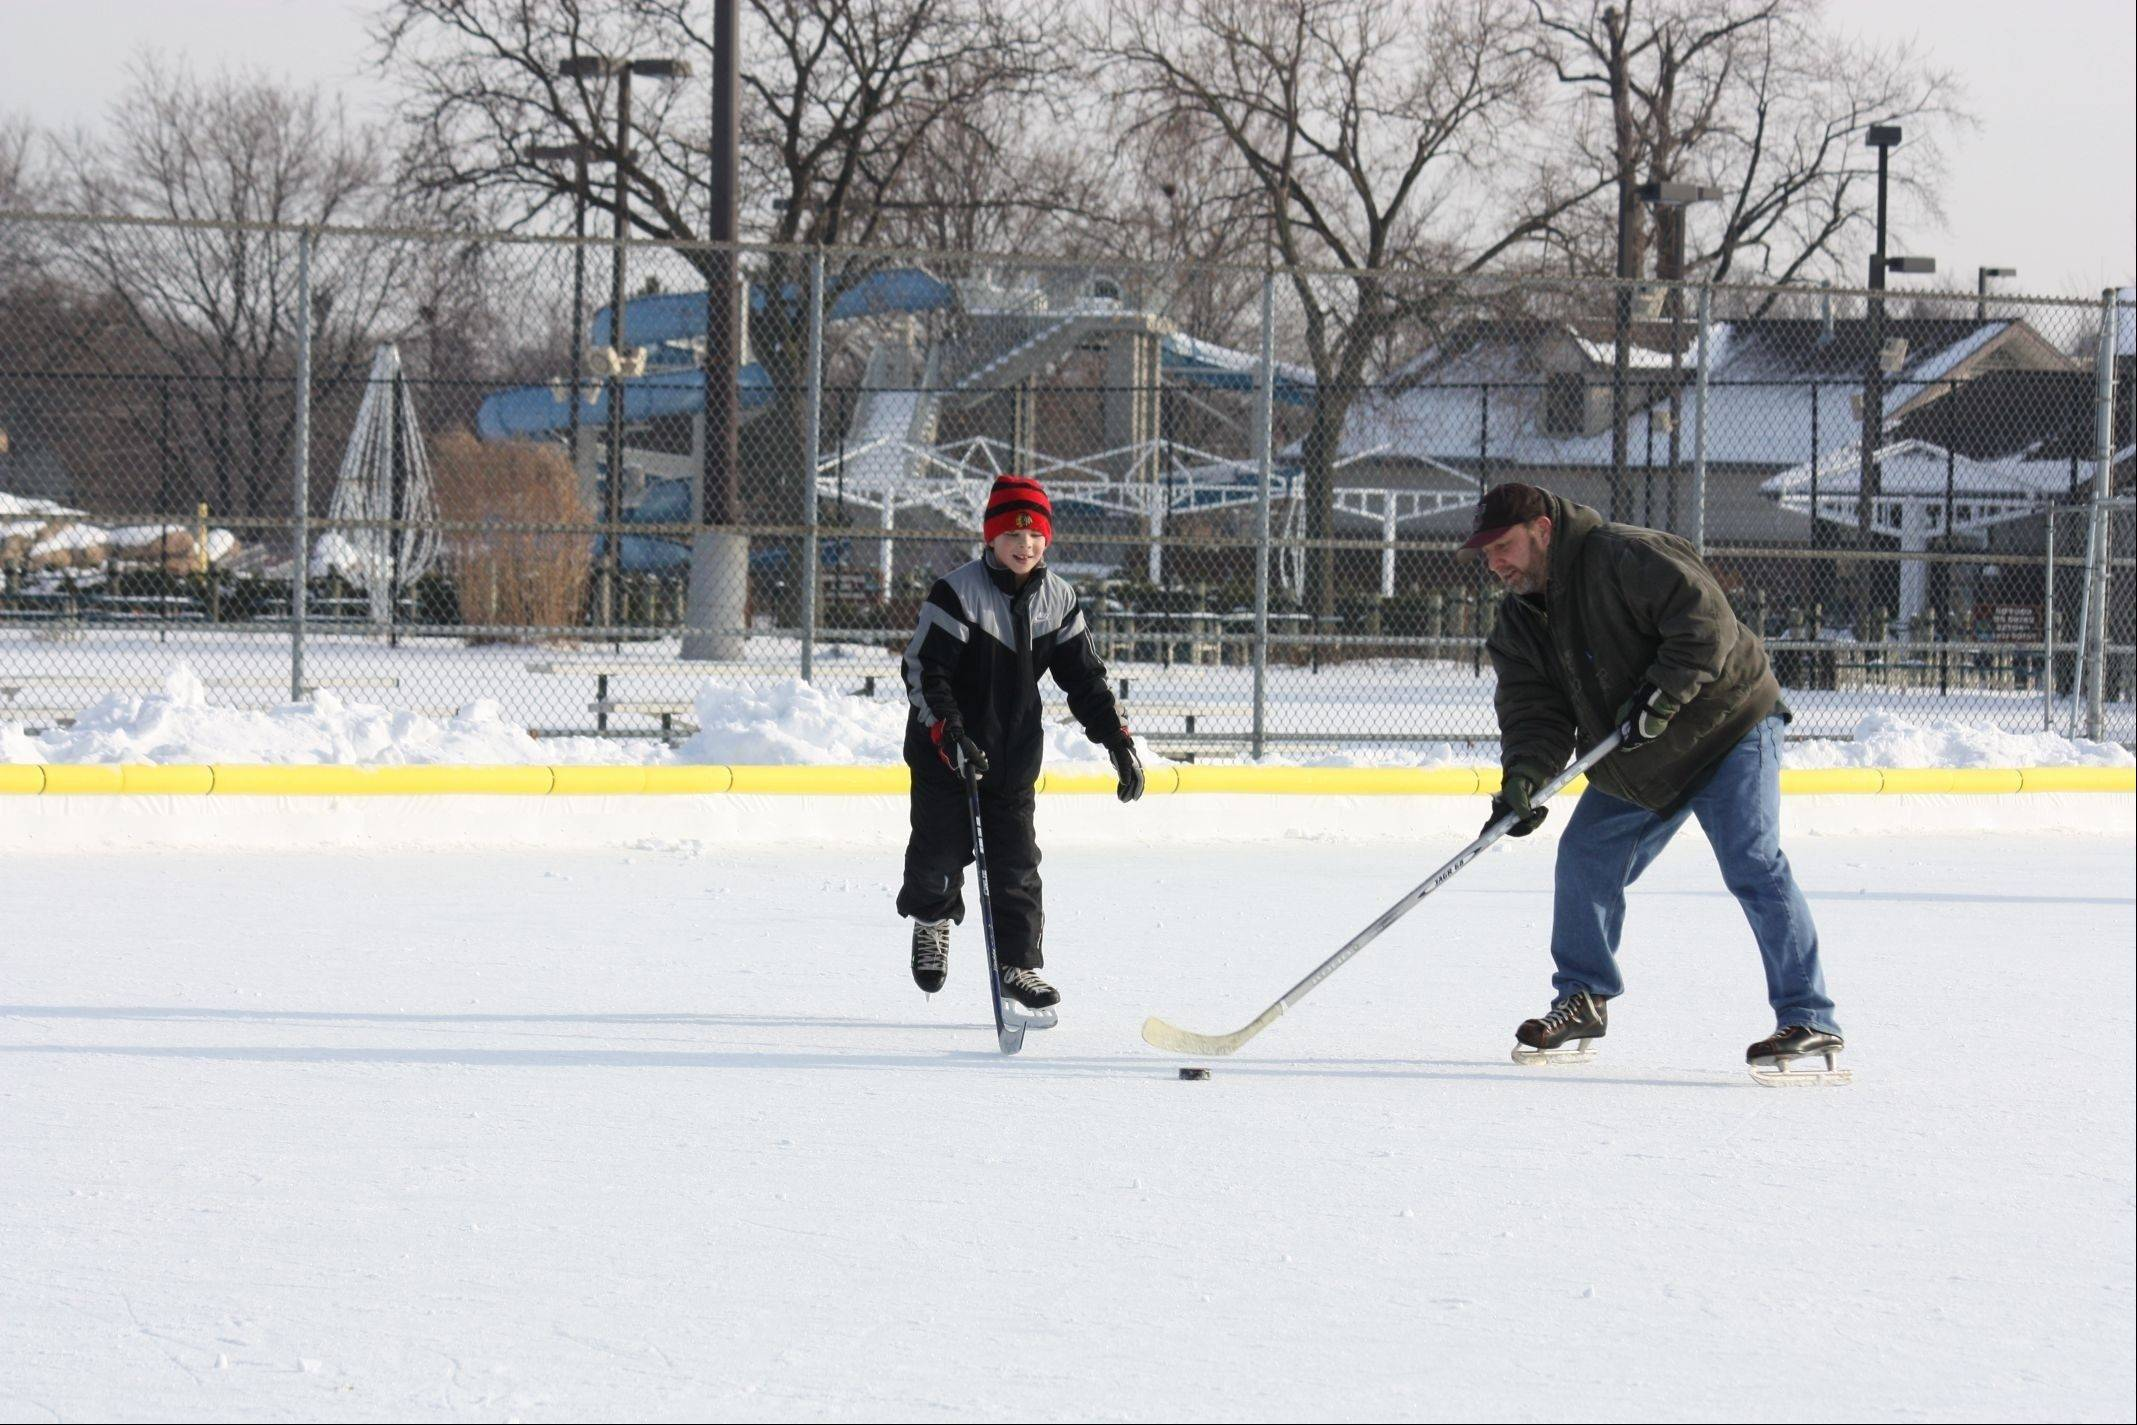 The Palatine Park District offers two unsupervised ice skating rinks at Community Park, 250 E. Wood St. One rink is for public skating and one is for ice hockey.